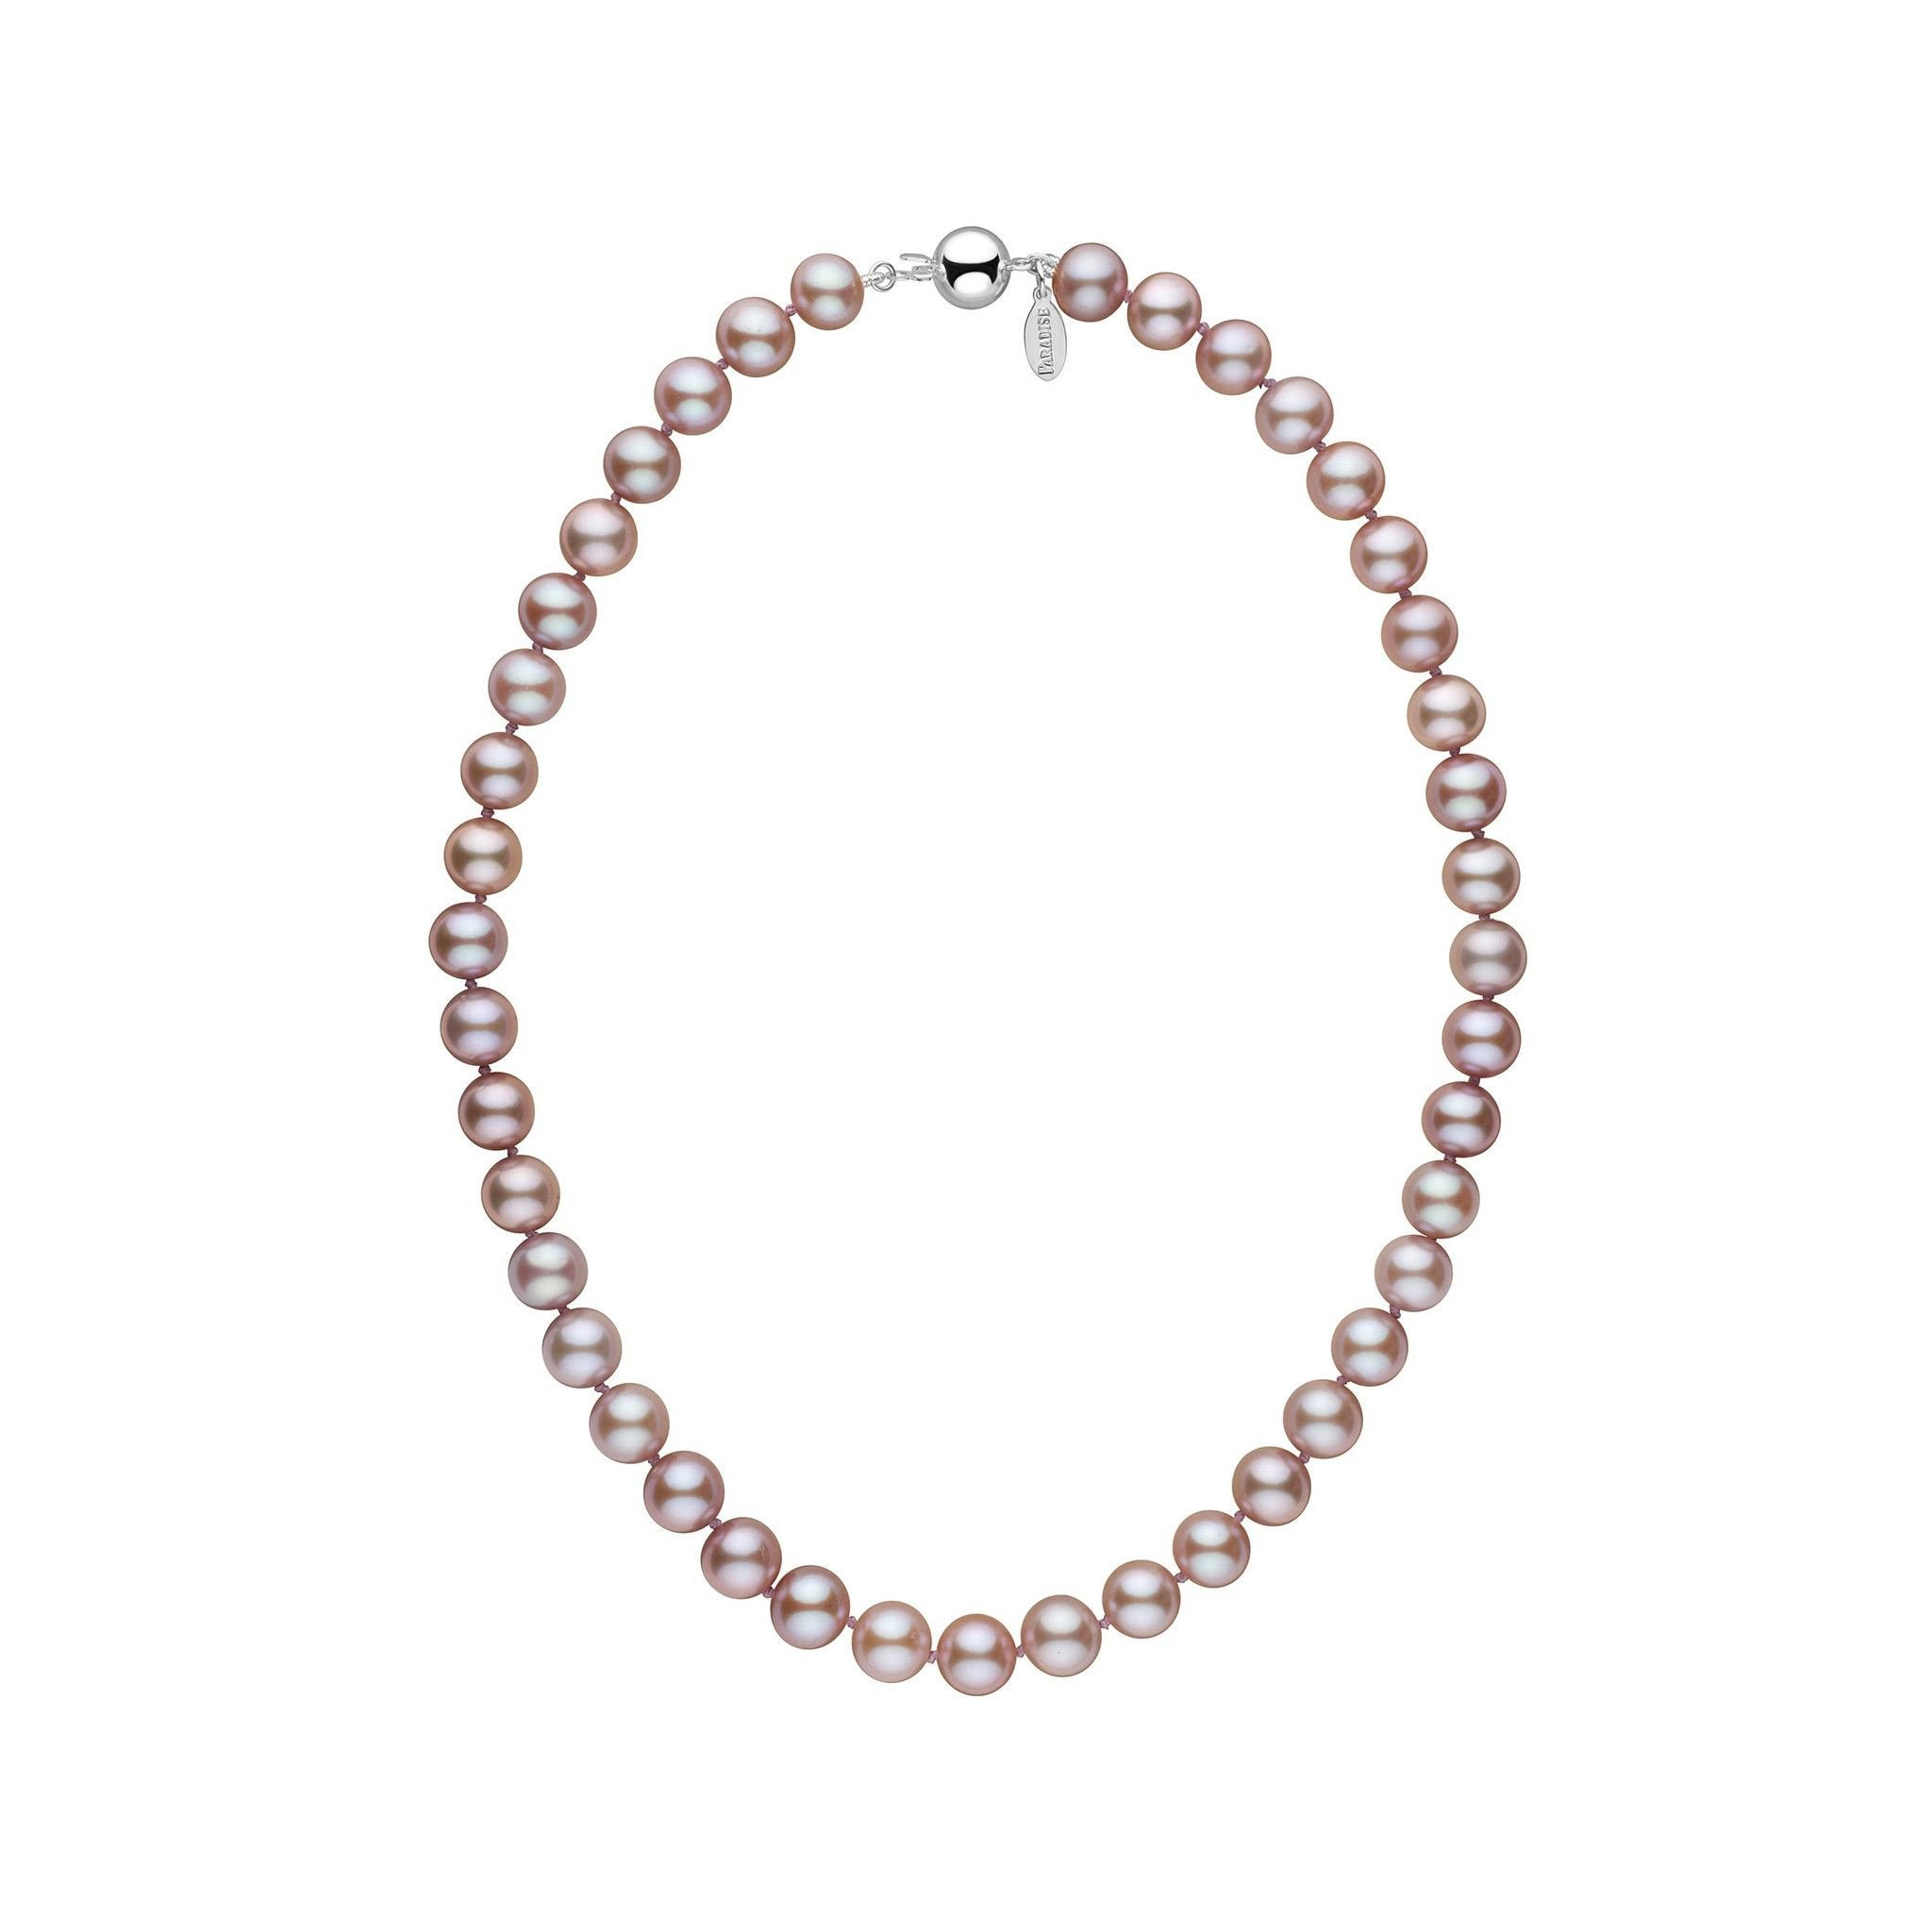 9.0-9.5 mm 16 Inch Lavender Freshadama Freshwater Pearl Necklace by Pearl Paradise